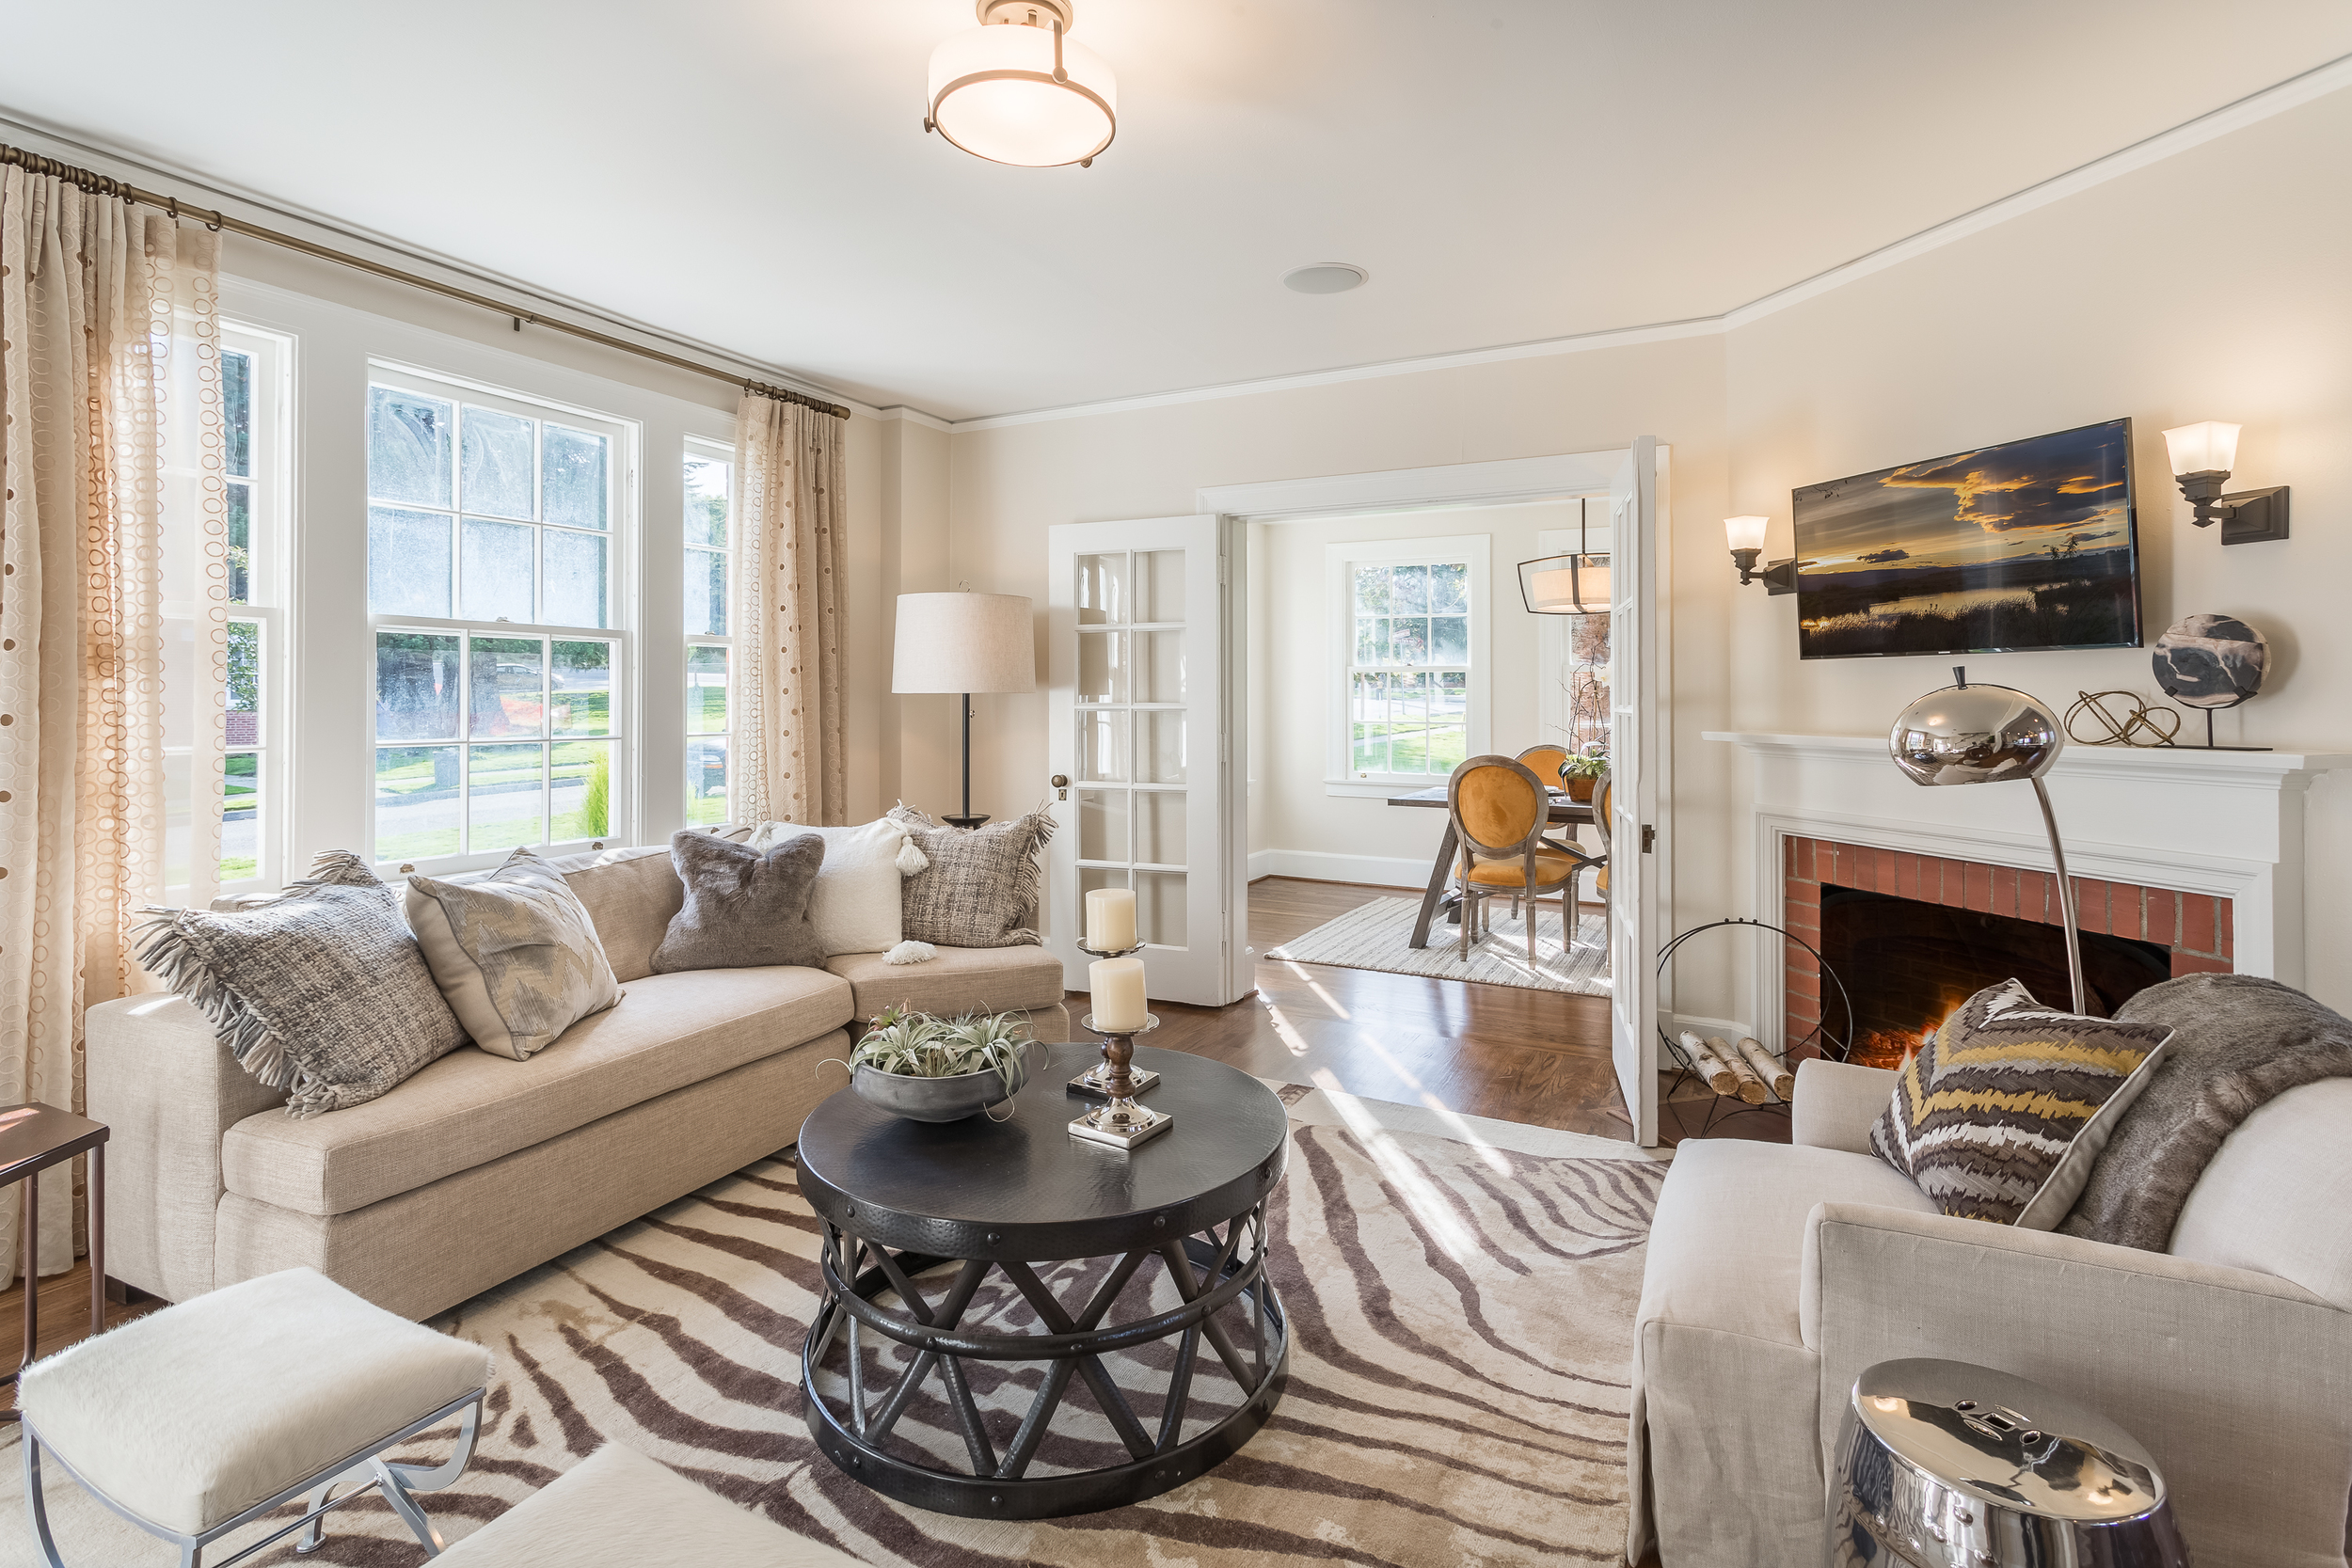 ABOVE AND BELOW : These move-in-ready heirloom homes at Fort Lawton (shown above) have three-bedrooms and nostalgic yet modern open floor plans. Even better, Discovery Park is your backyard.